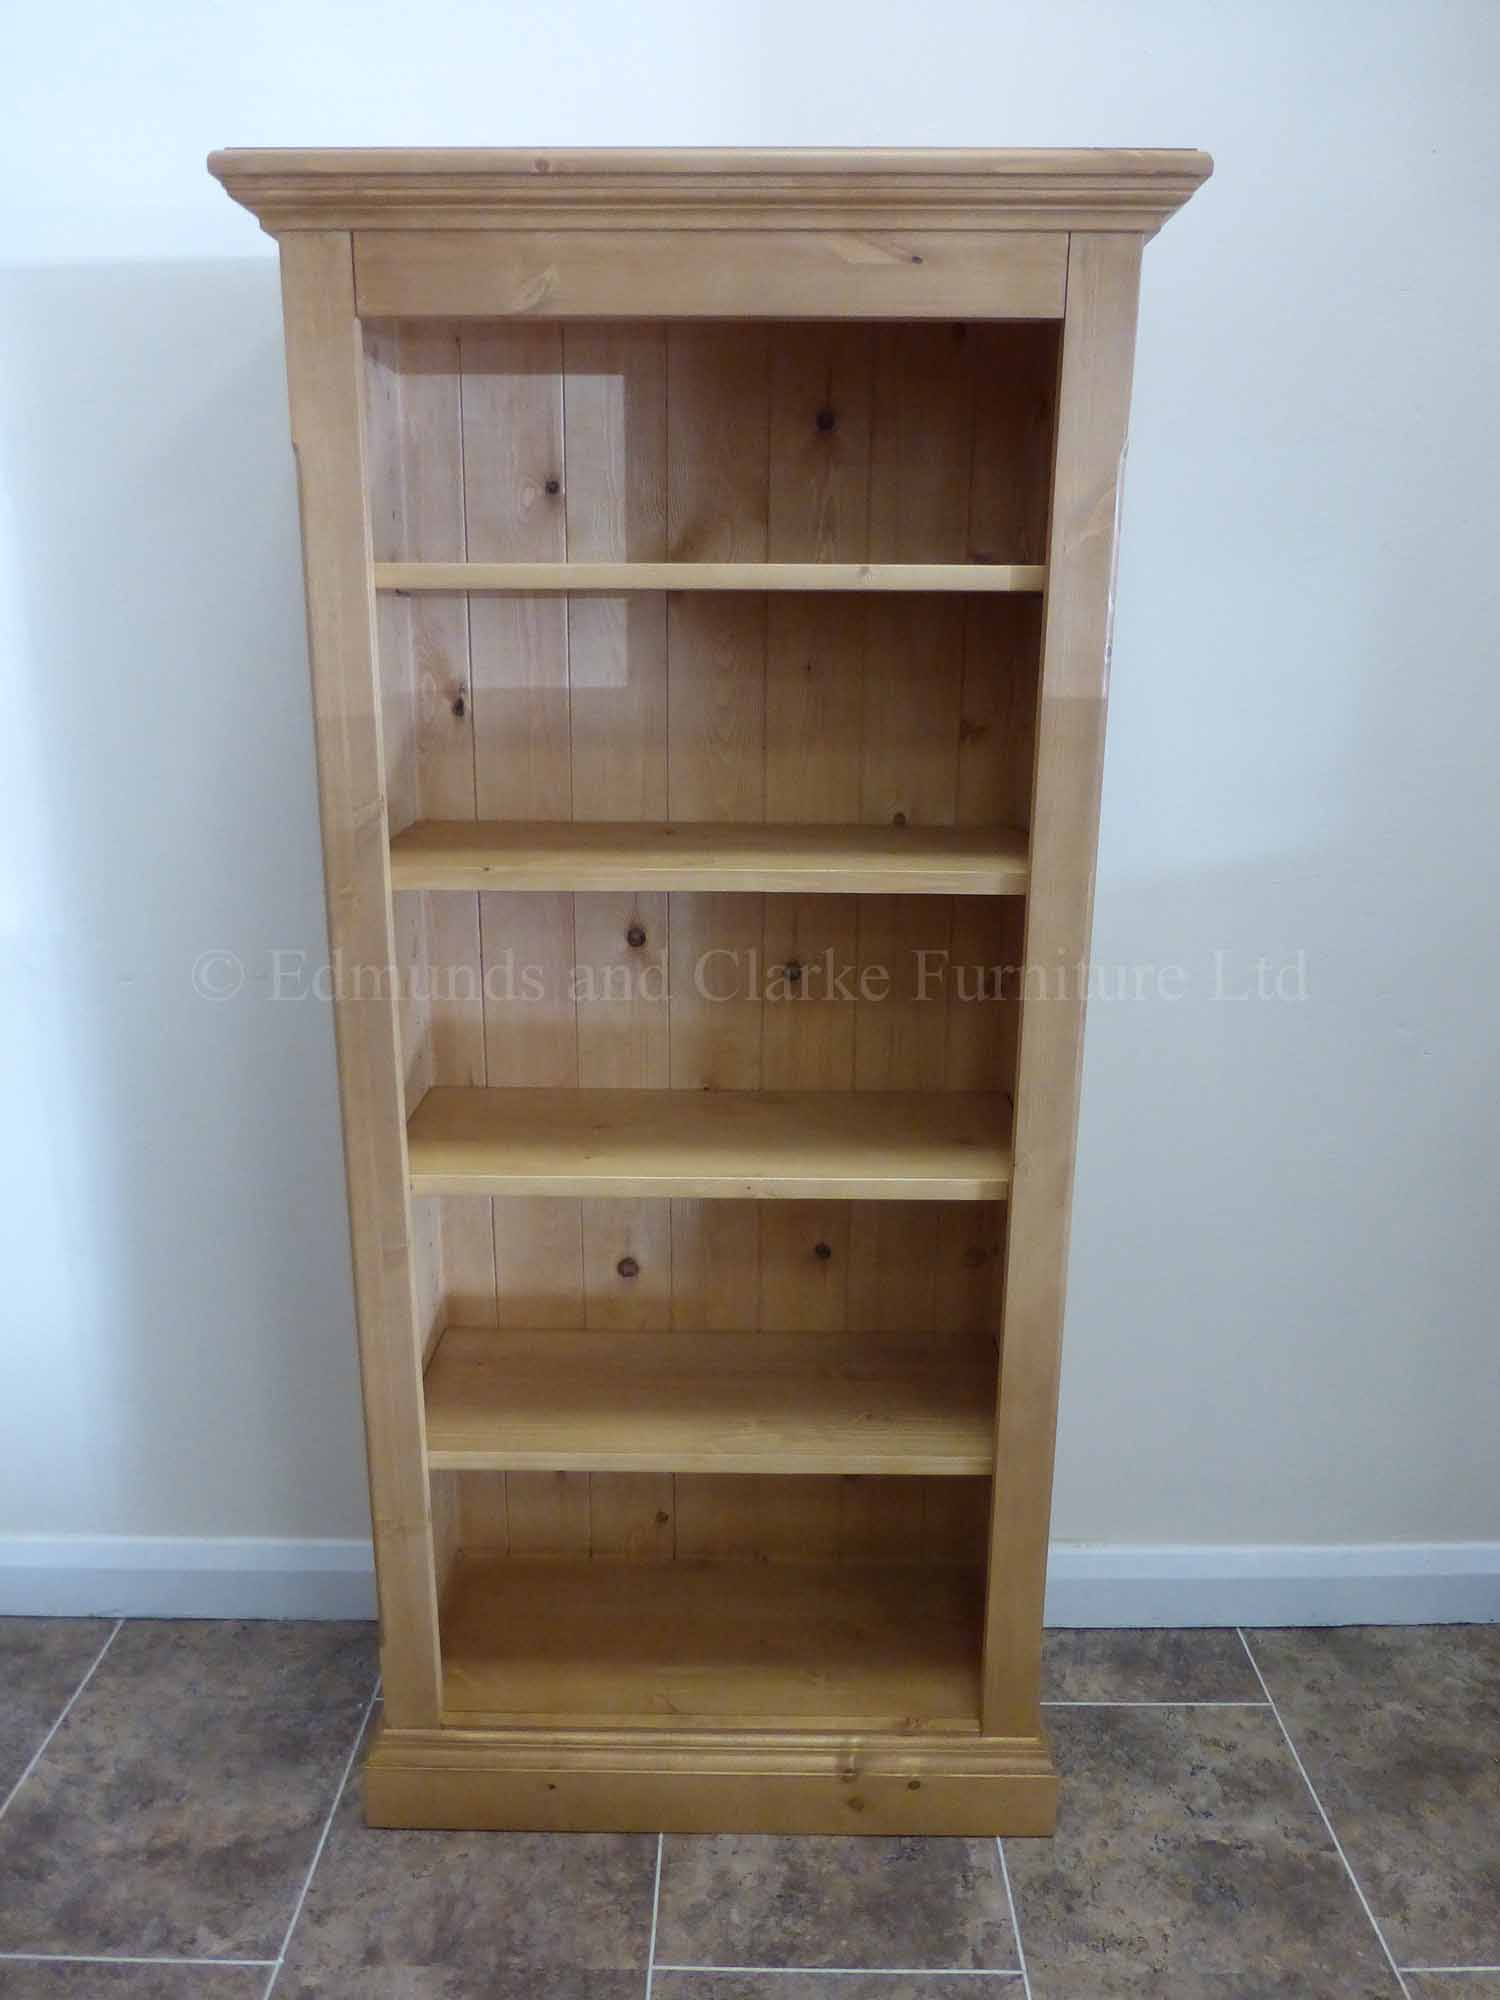 Edmunds Pine Shallow Depth Bookcases. Image shows tall narrow style bookcase with 4 adjustable shelves waxed pine finish all over. many finishes and sizes available